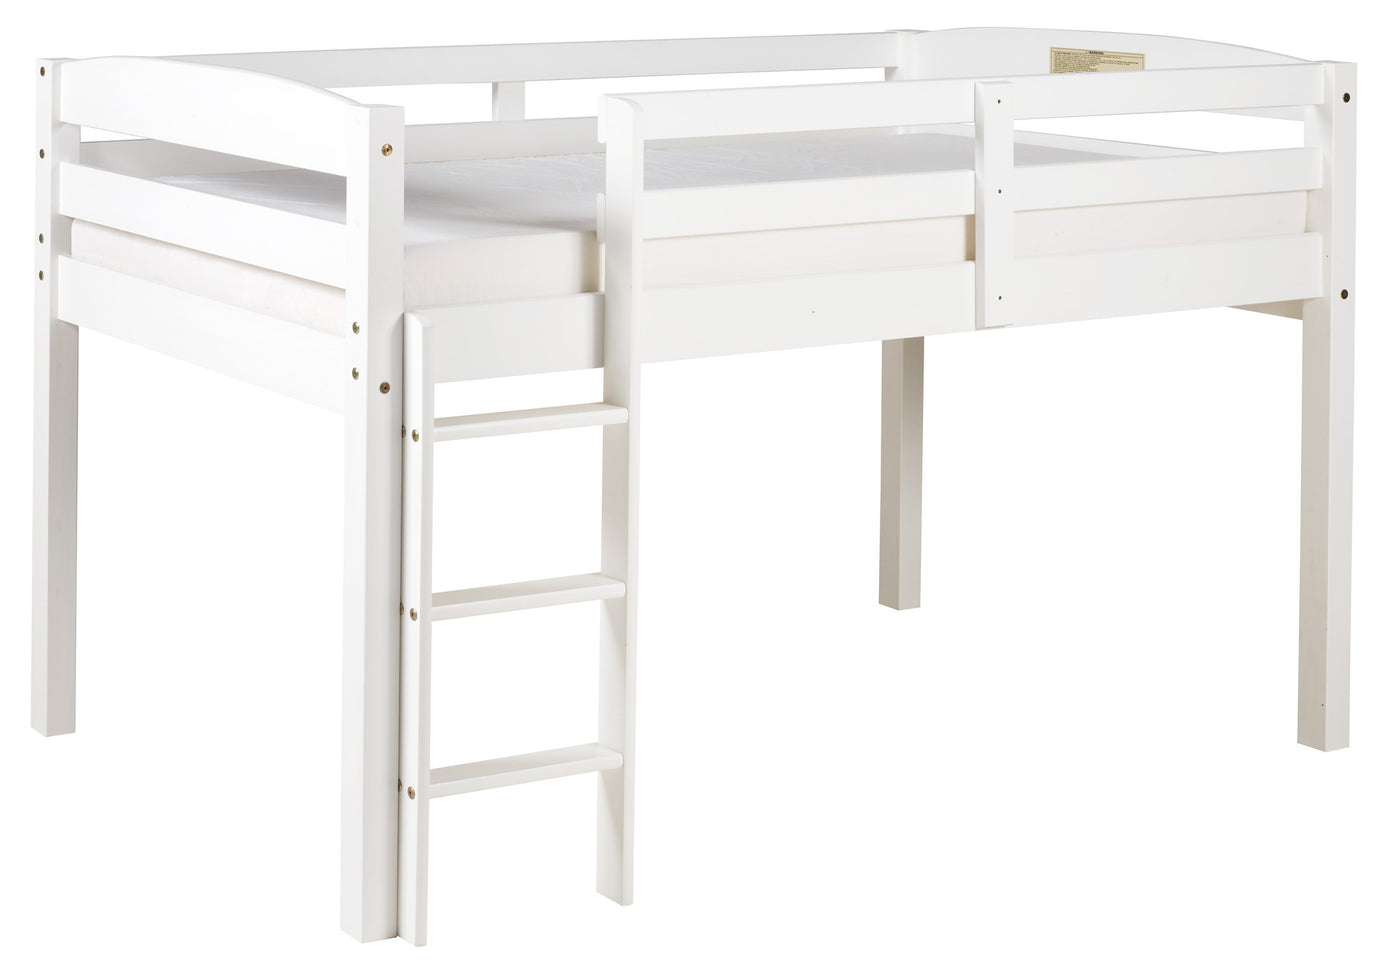 Camaflexi Bunk Bed Mission Headboard Angle Ladder Hipbeds Com